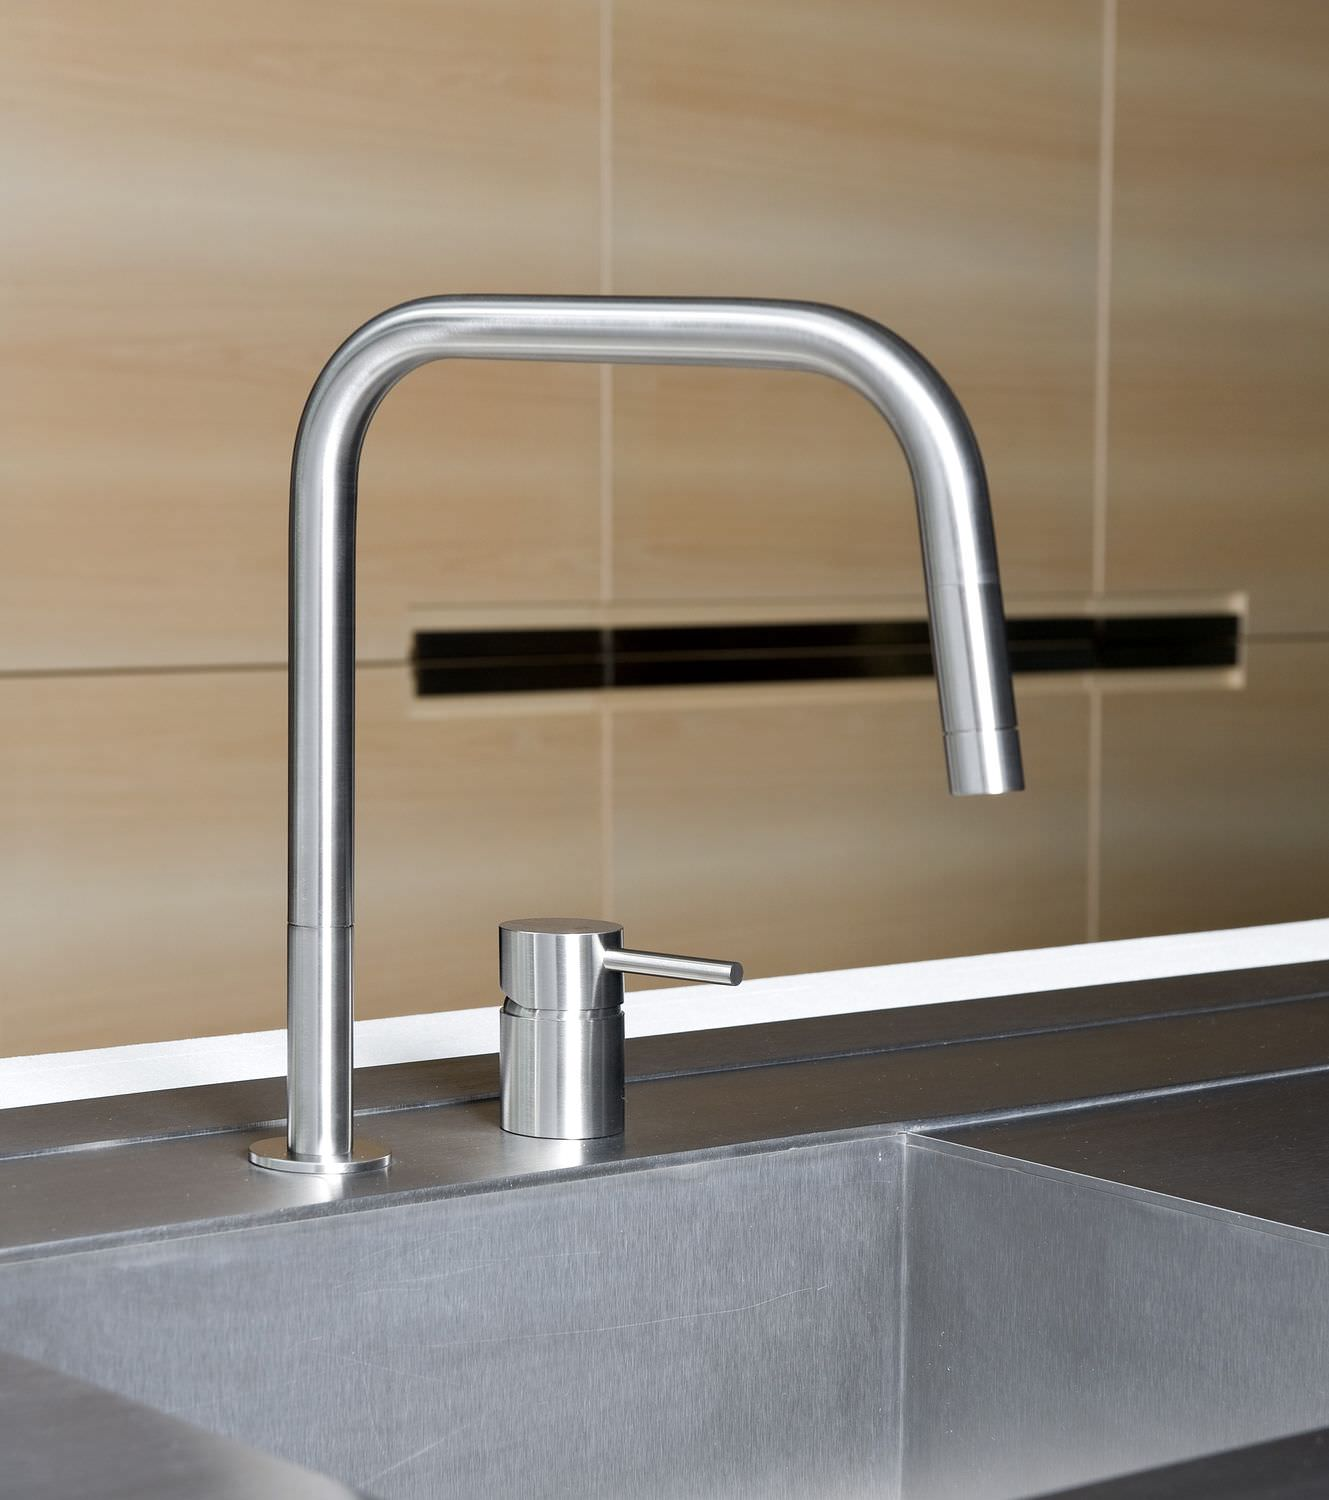 Stainless Steel Mixer Tap Kitchen 2 Hole With Pull Out Spray